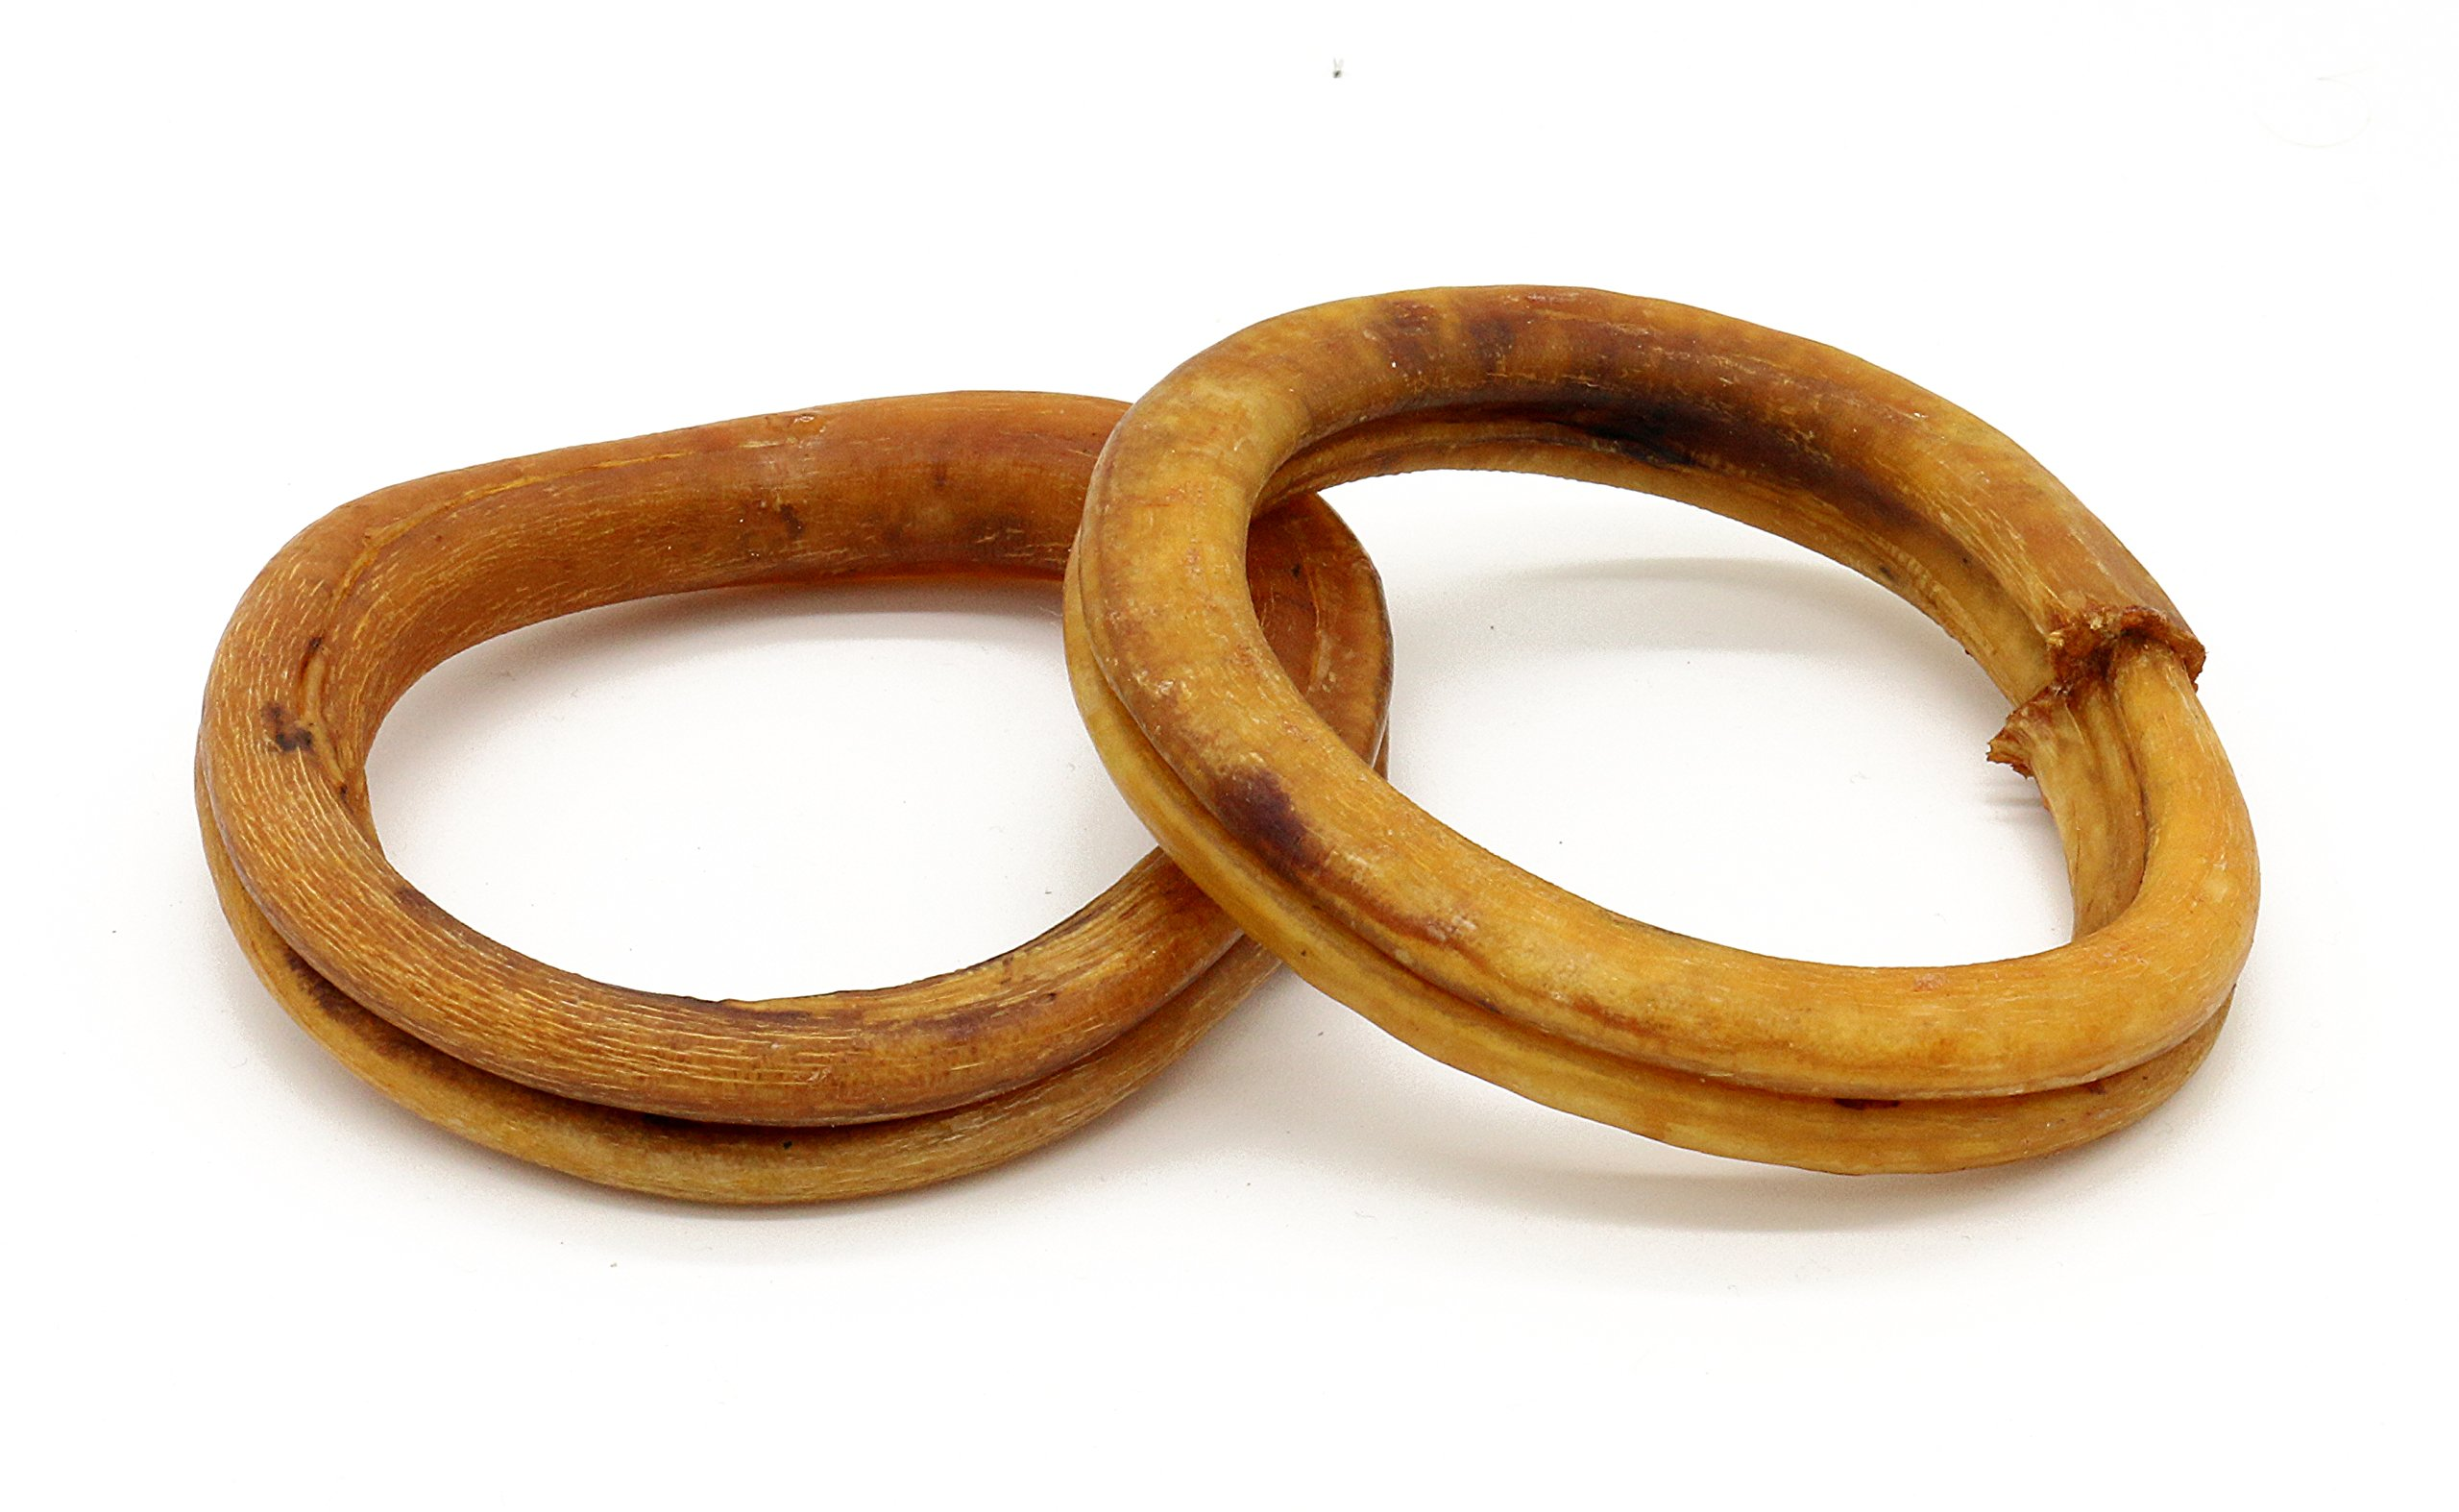 4 Inch Odor-Free Bully Stick Rings - All-Natural, Grass Fed (25 Rings)